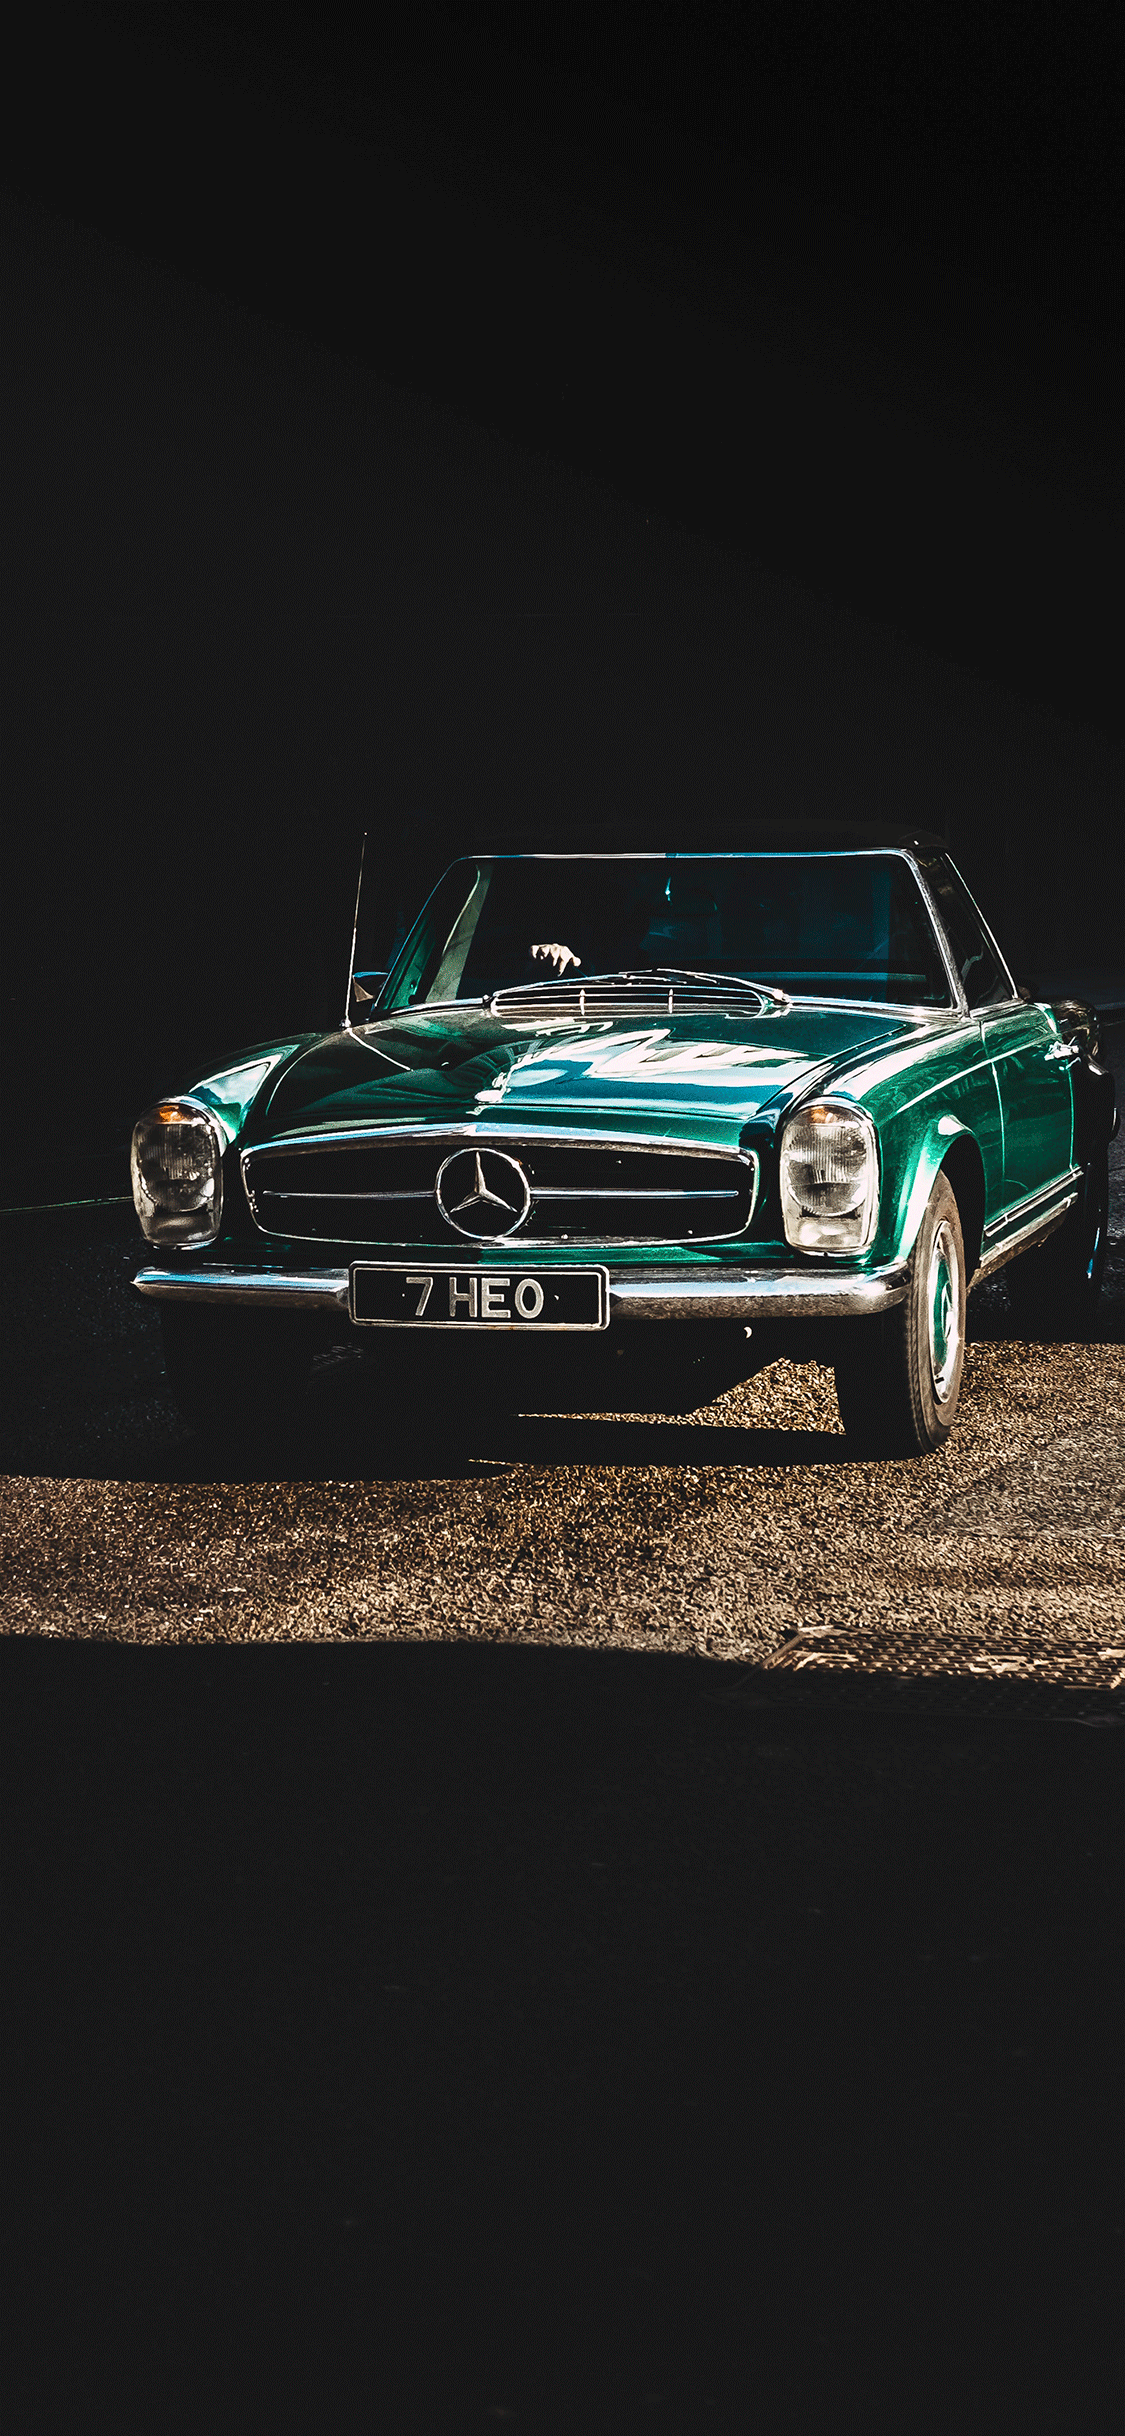 iPhone wallpaper car vintage mercedes benz Fonds d'écran iPhone du 08/10/2018